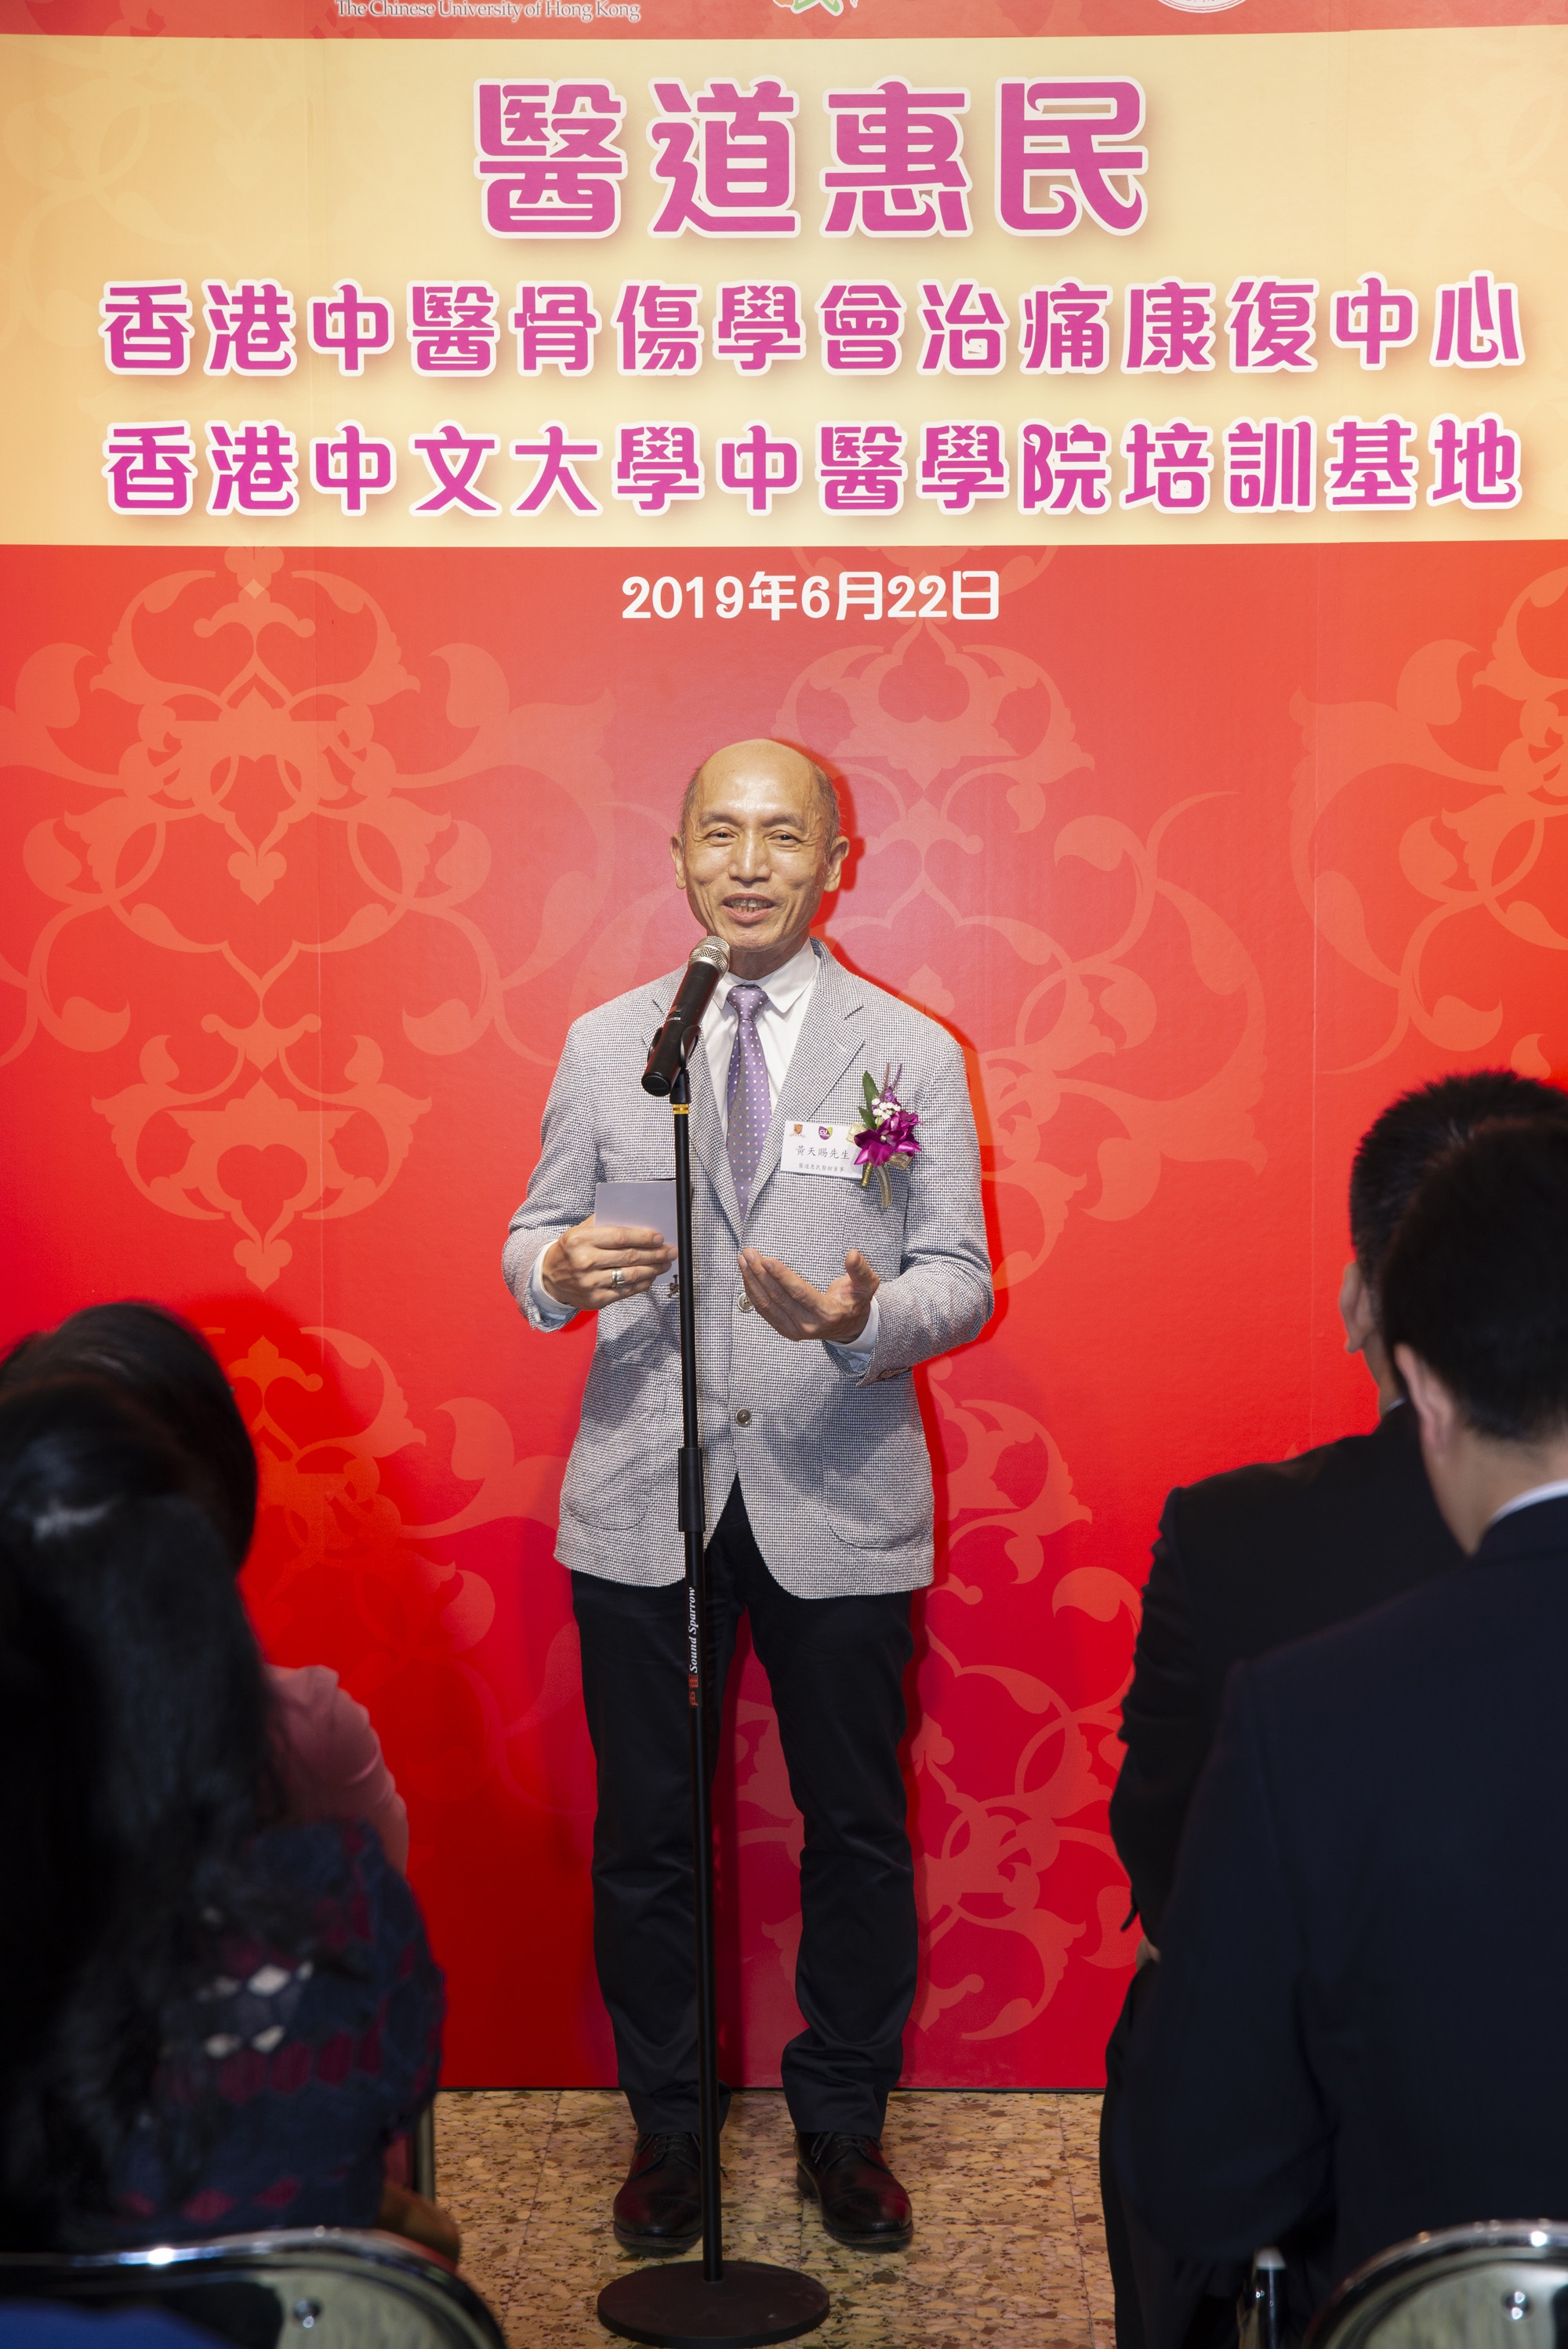 Mr. WONG Tin Chee, Director of the Community Med Care Clinic, says that his reason for opening the Clinic is to offer Chinese medicine services to those in need.